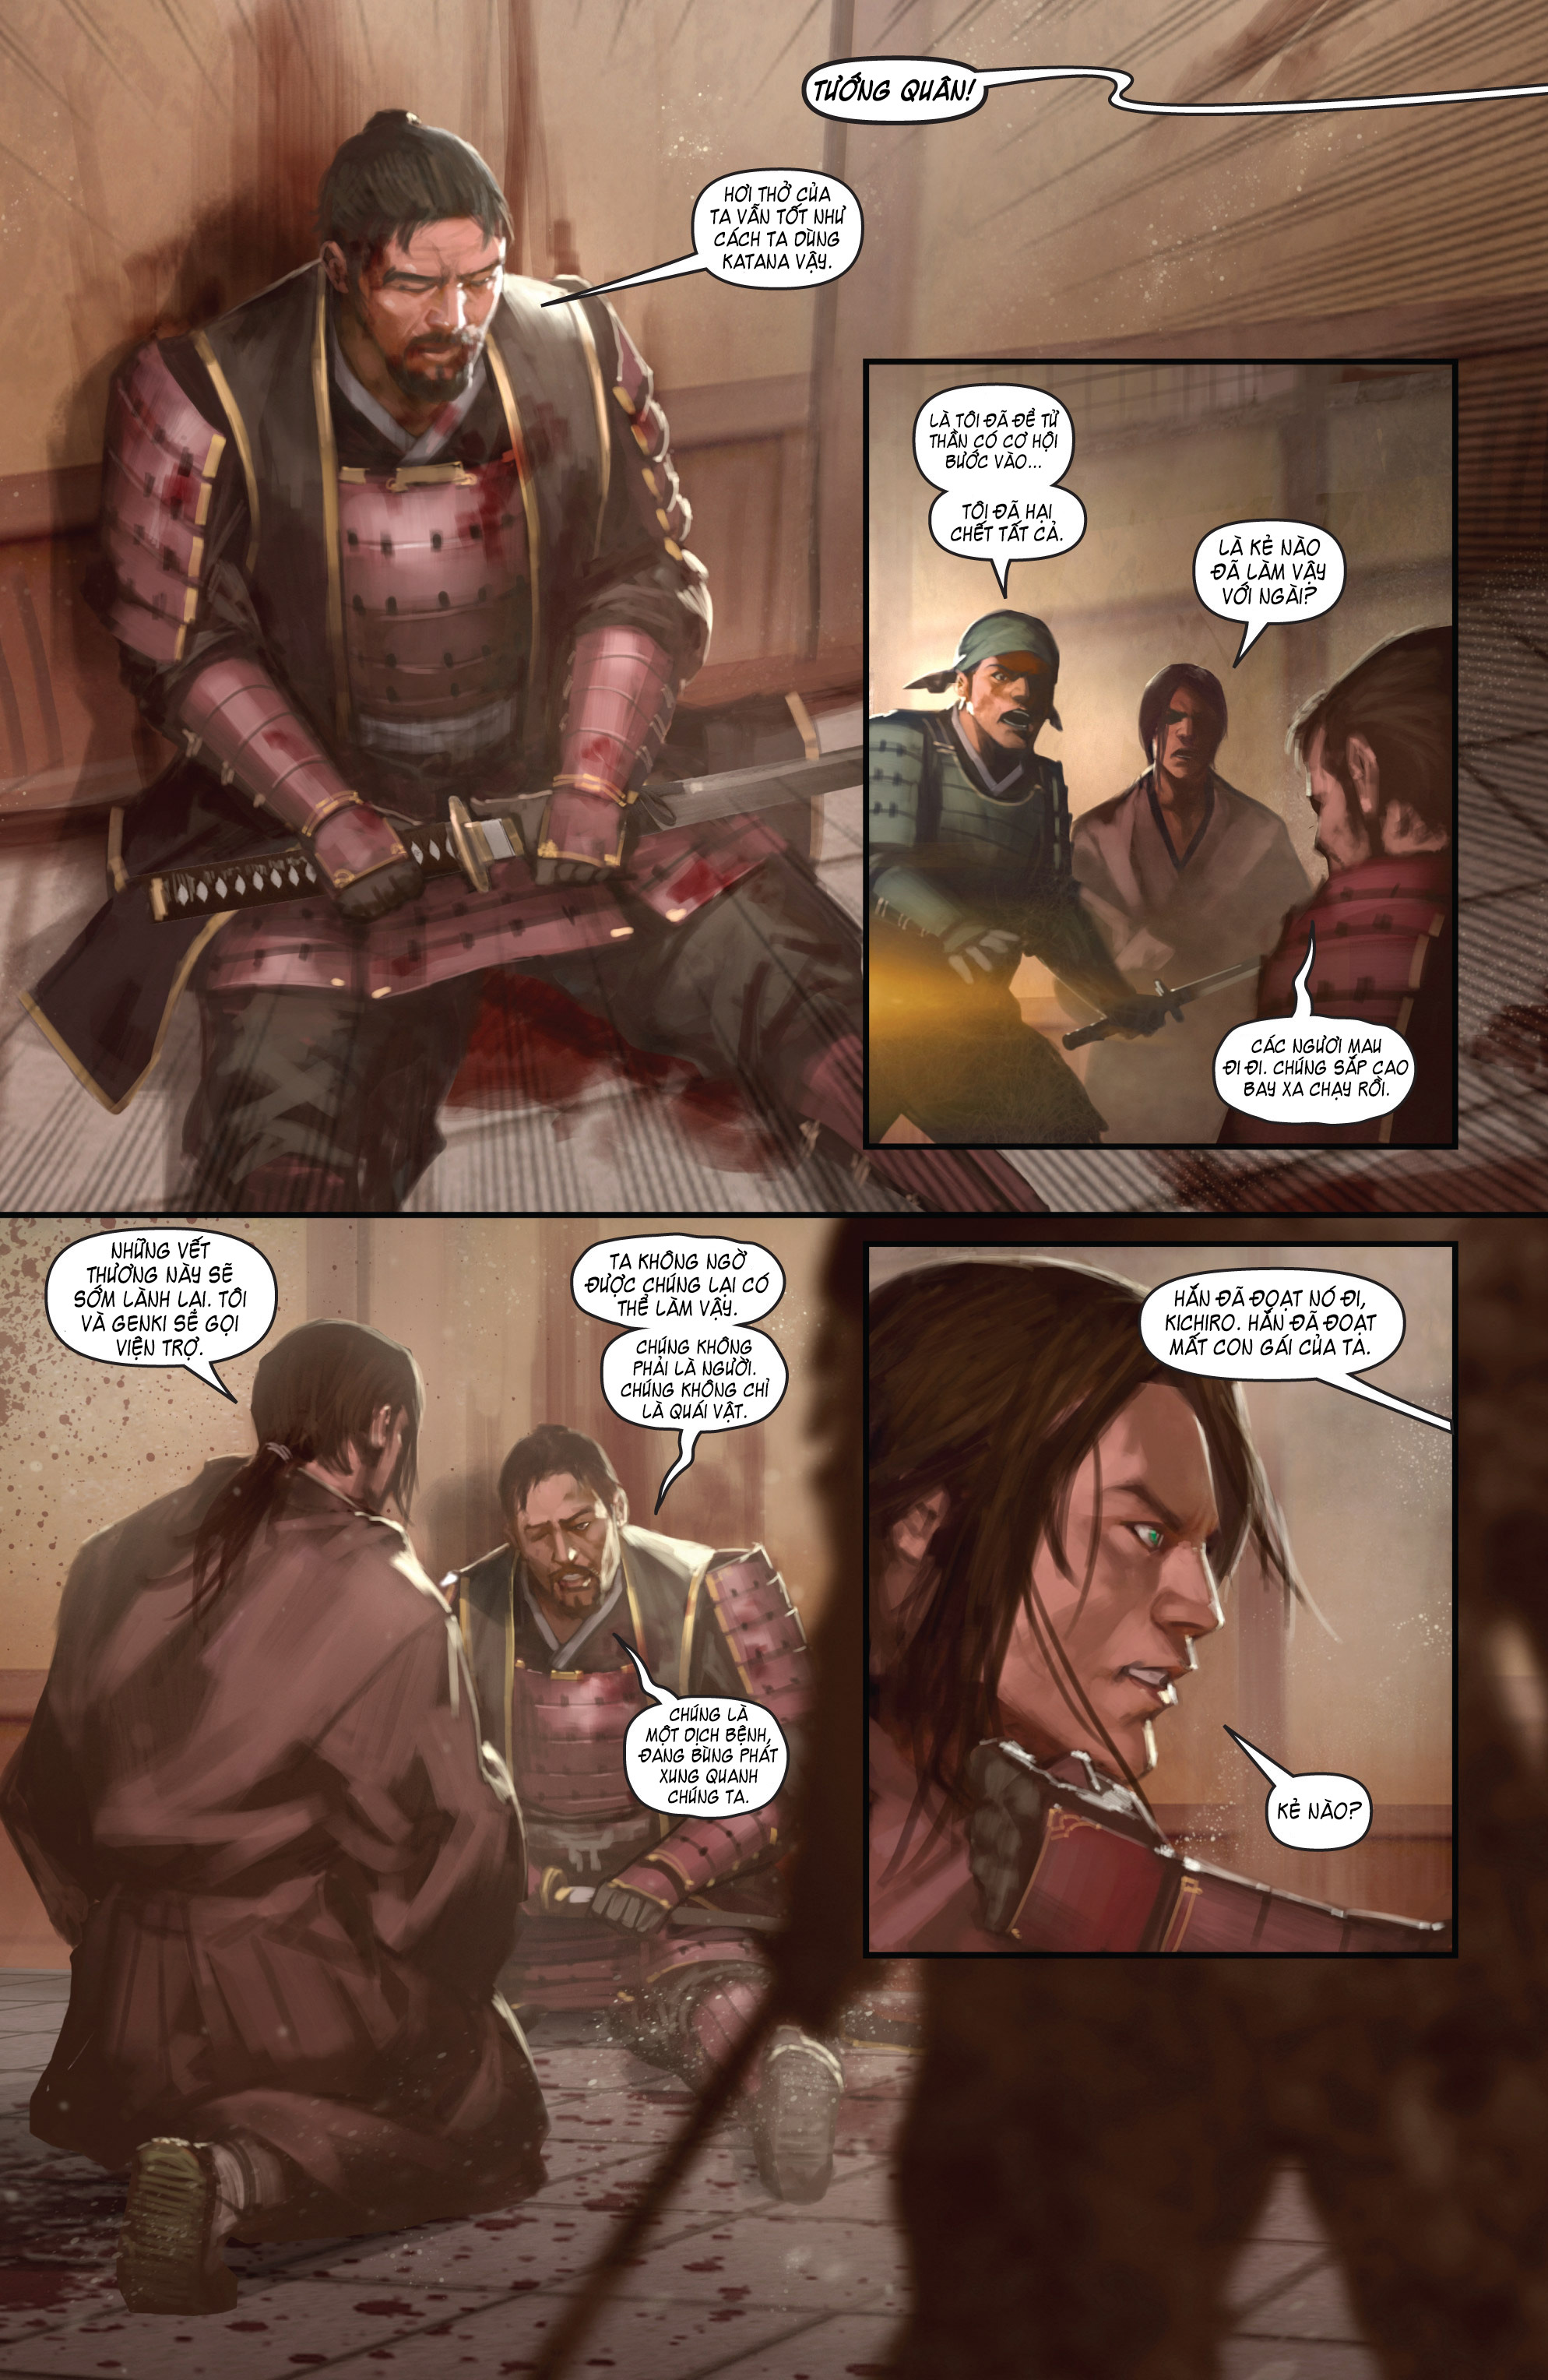 BUSHIDO - THE WAY OF THE WARRIOR chapter 4 trang 6